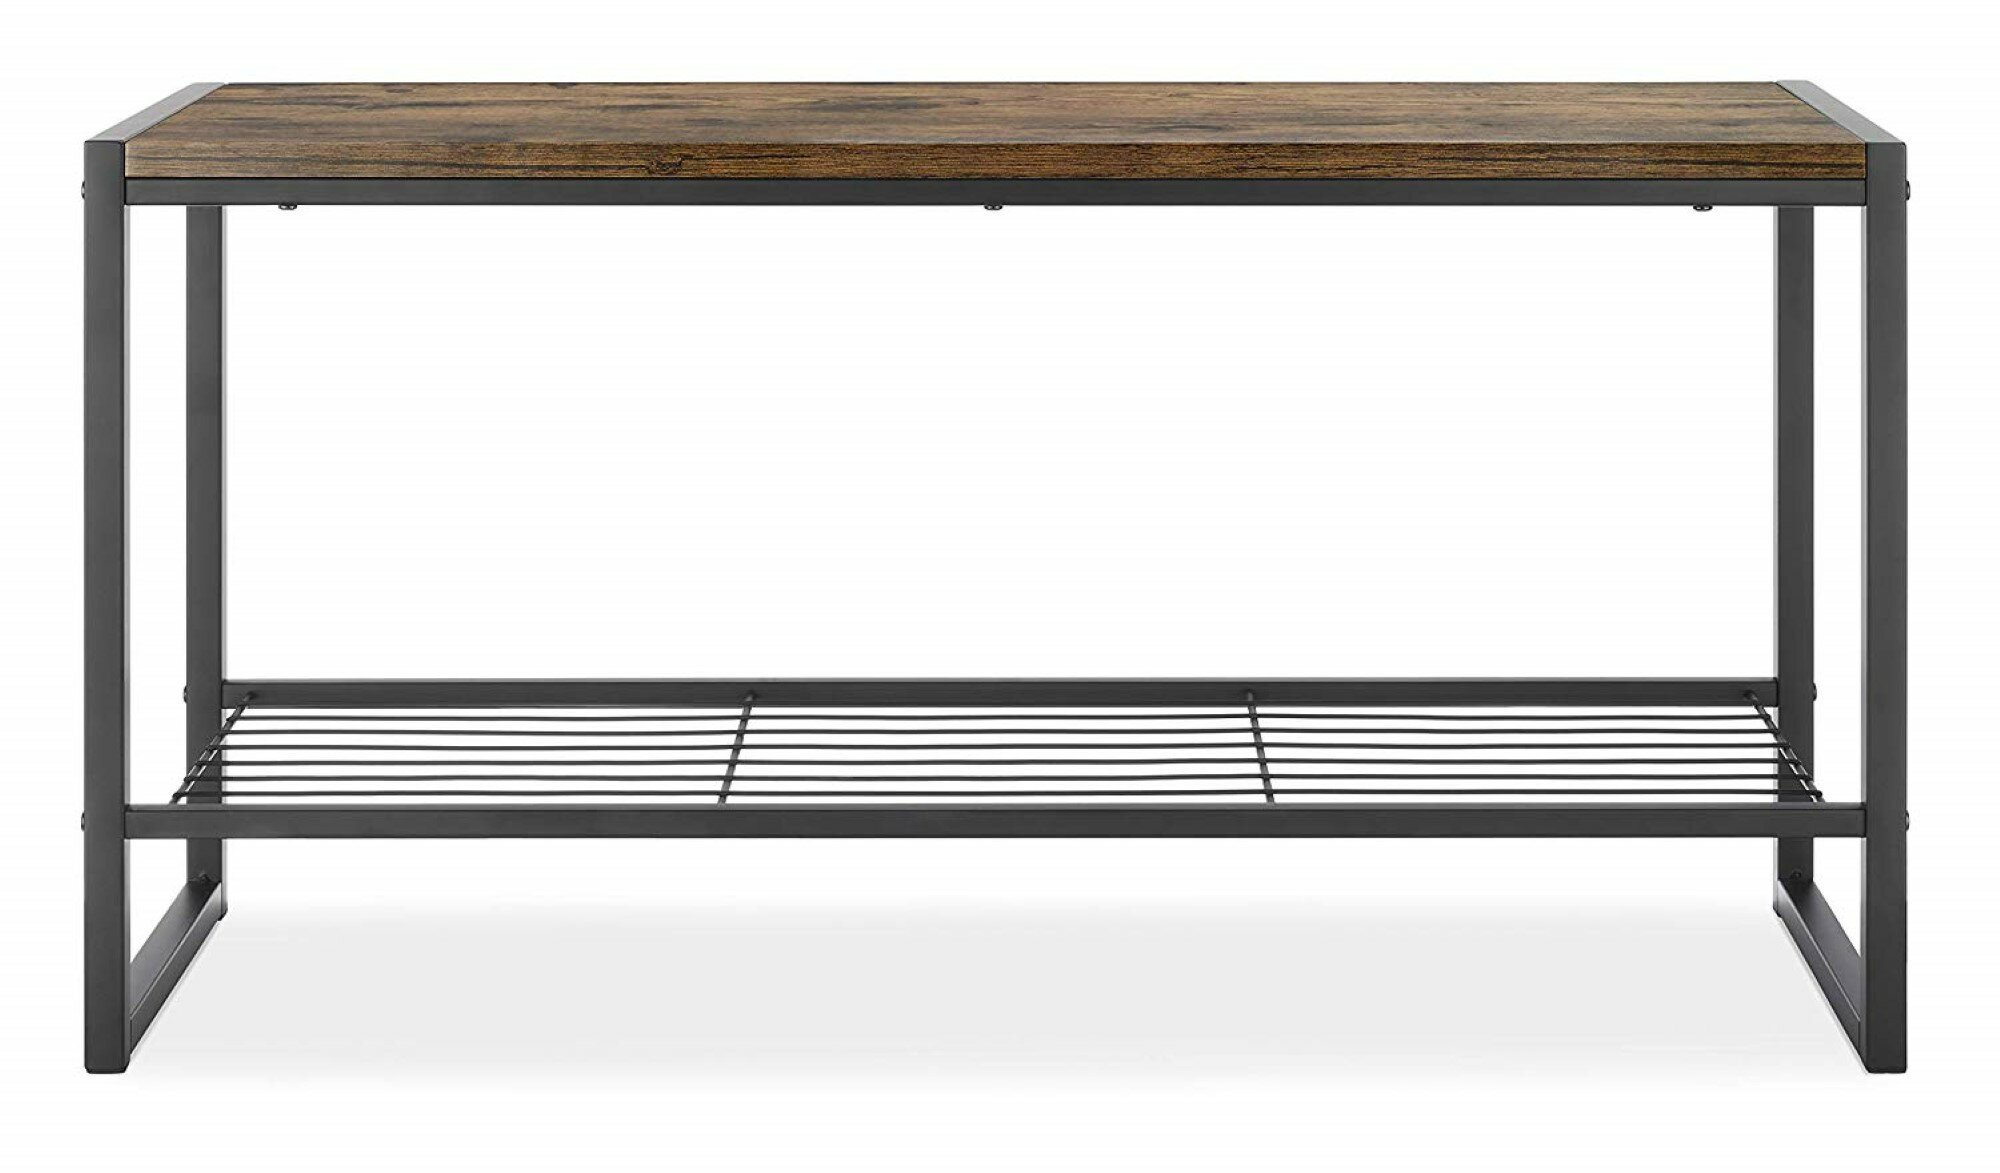 Union Rustic Stamey Manufactured Wood Bench Reviews Wayfair Ca